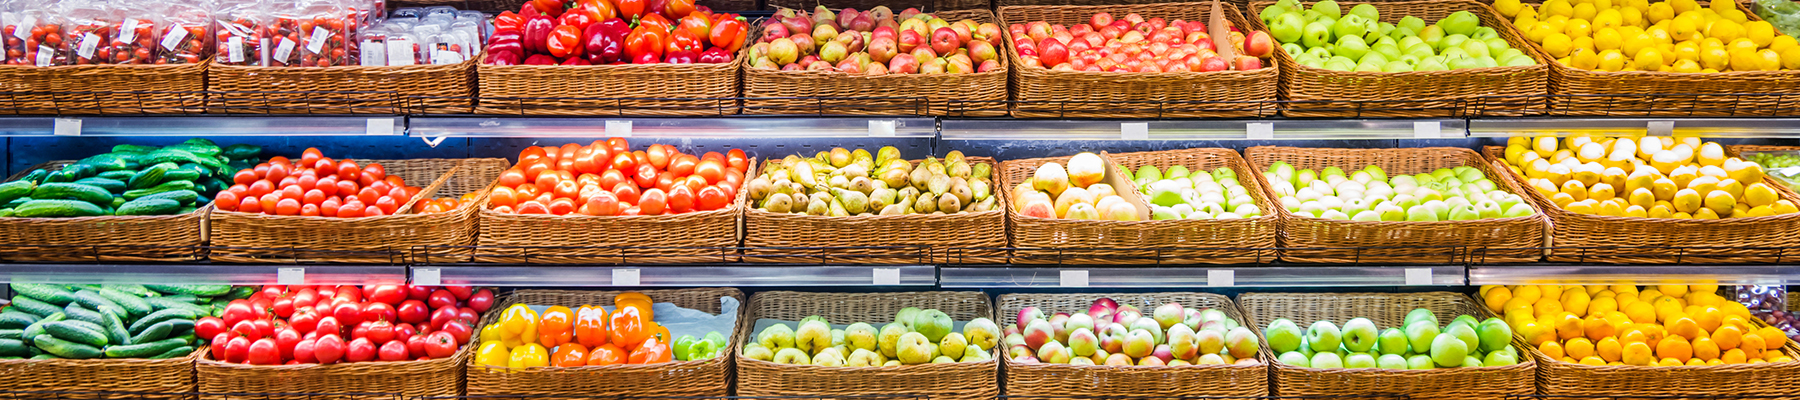 Fresh vegetables displayed in baskets at a store